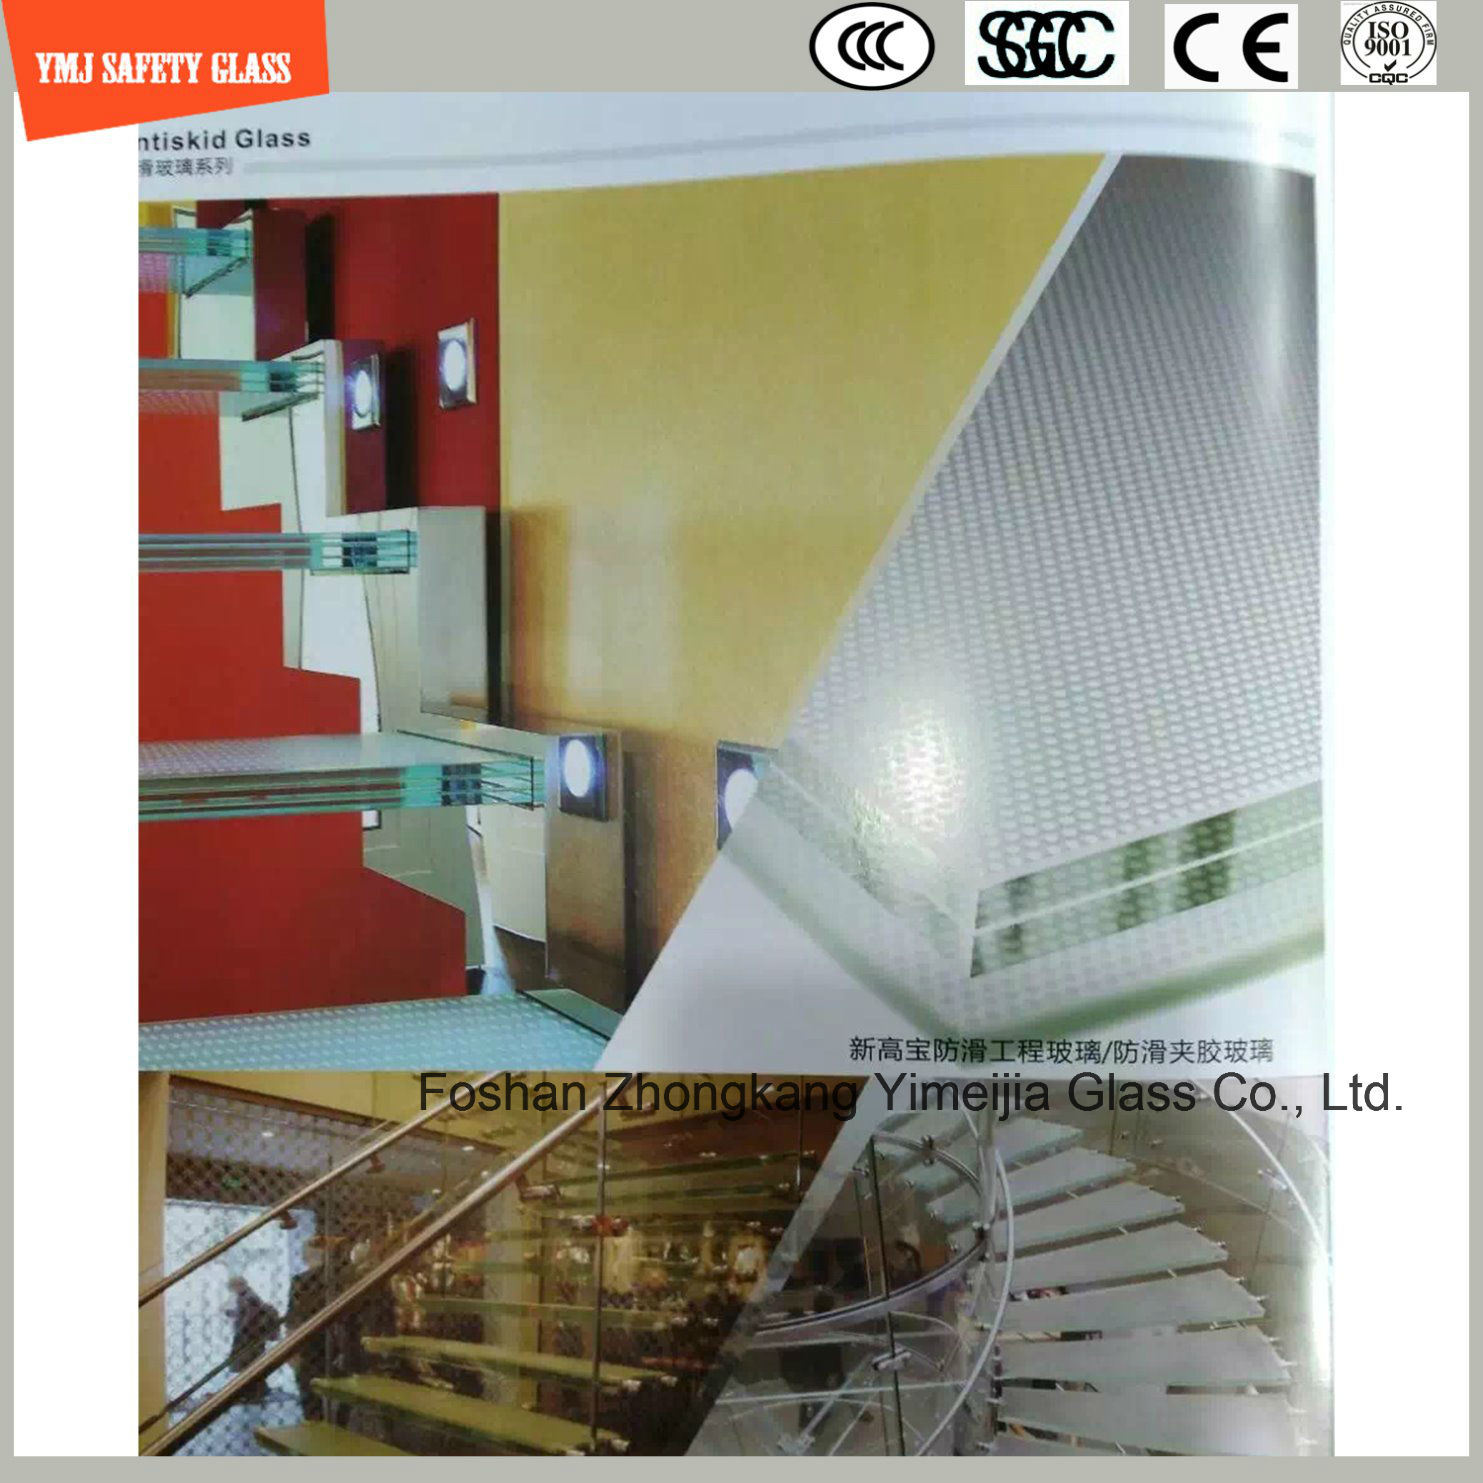 Laminated Glass for Stairs, Partition& Shower